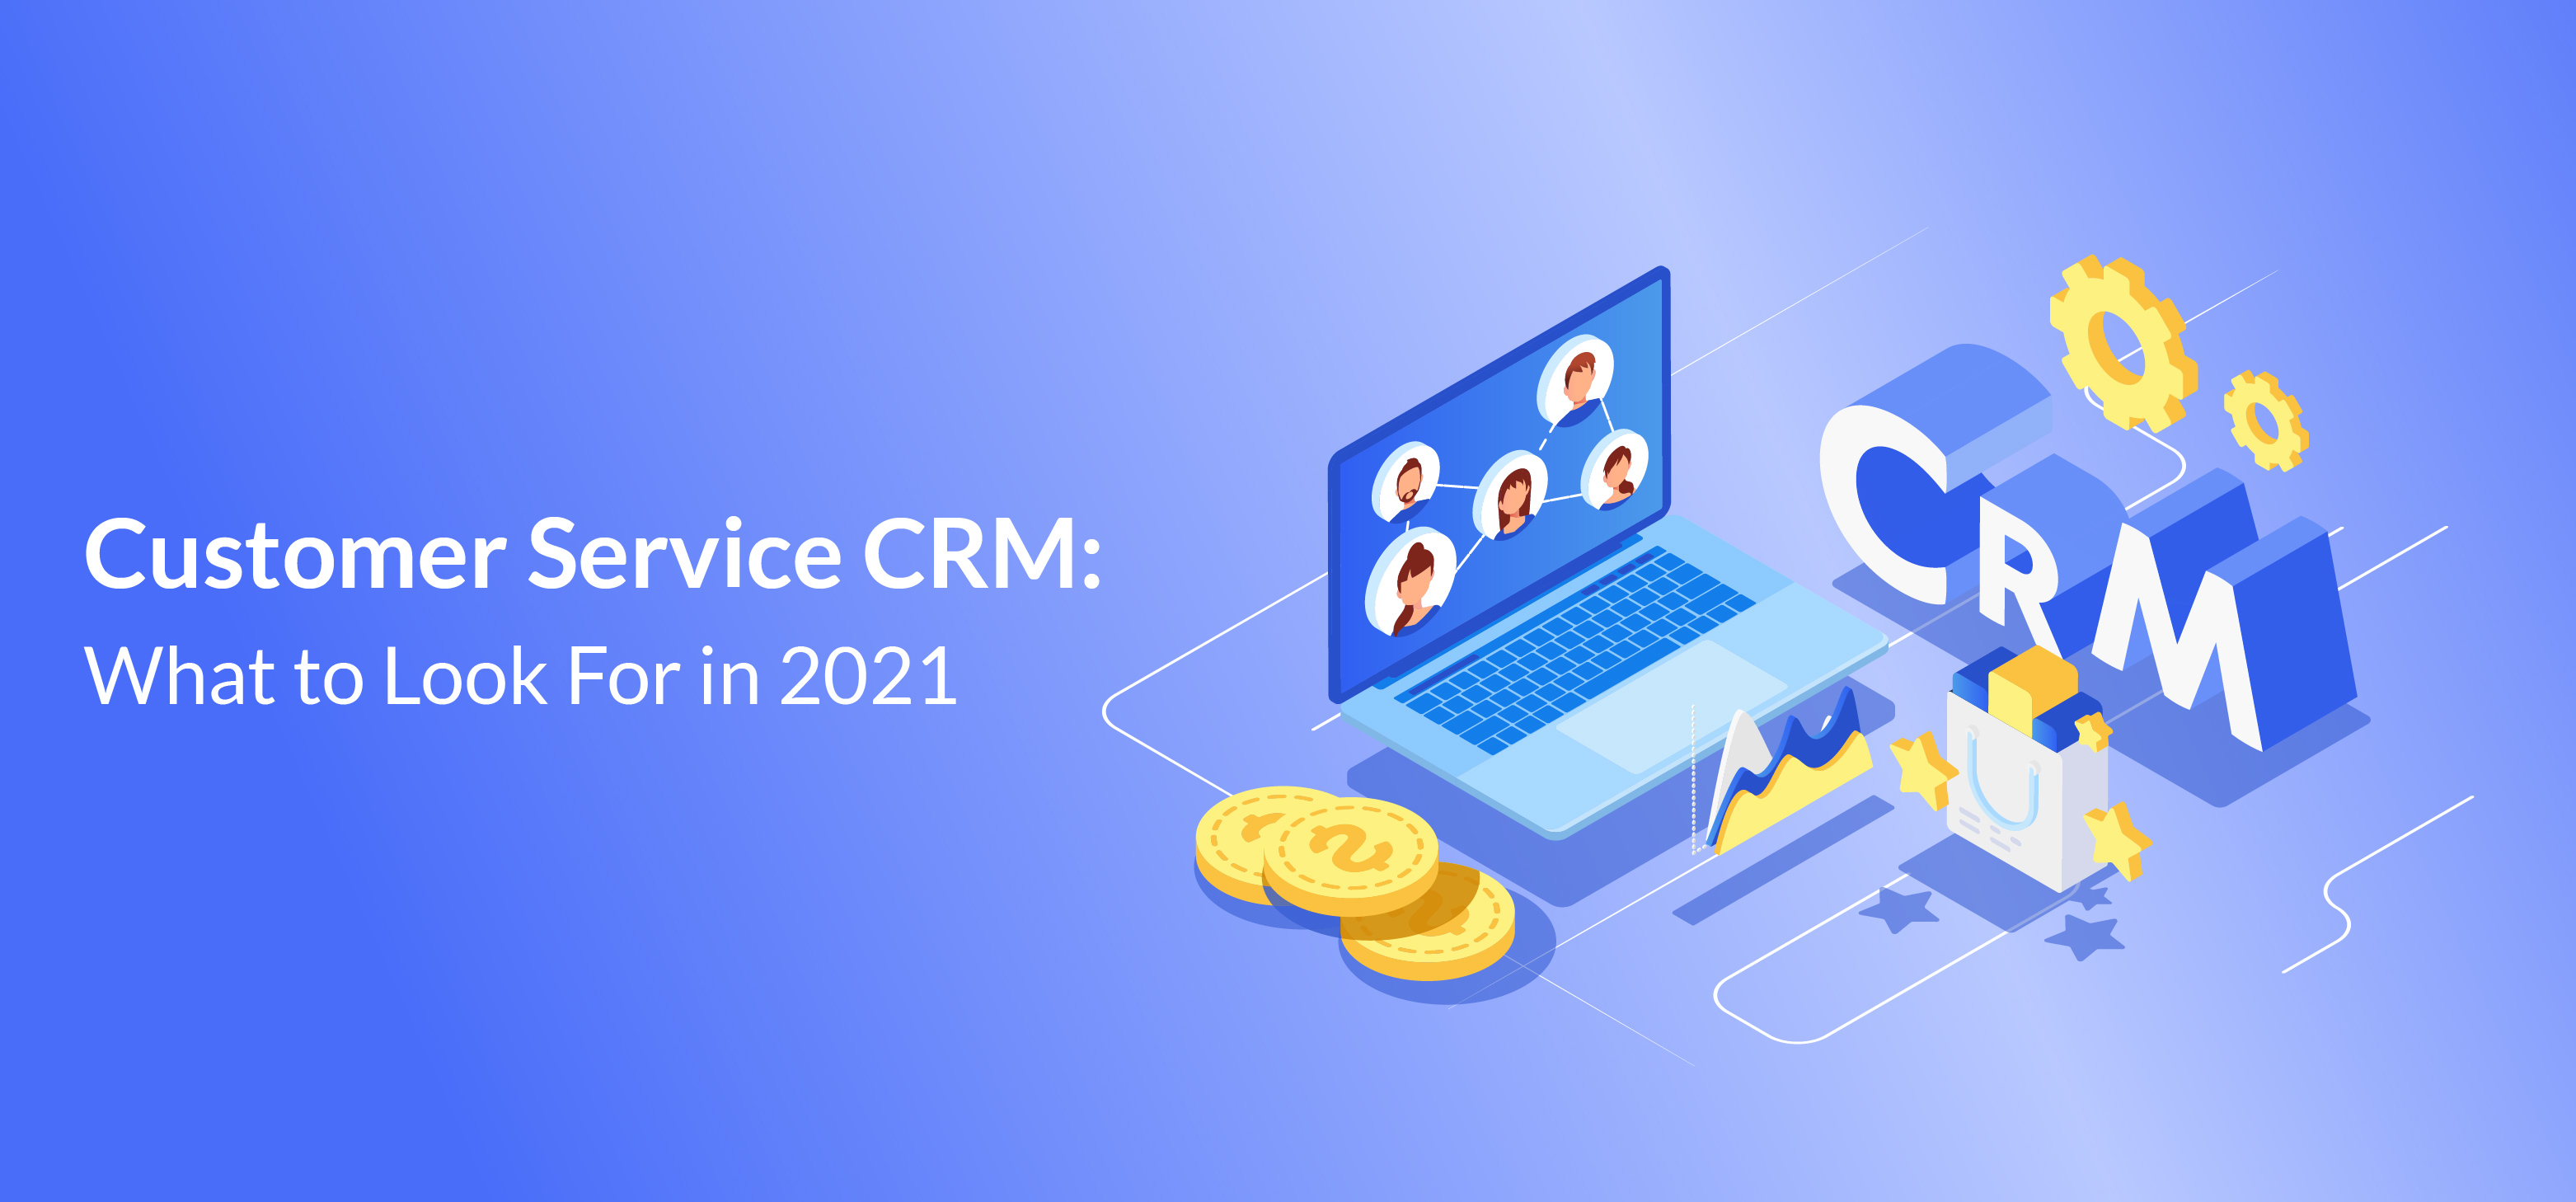 Customer Service CRM: What to Look For in 2021